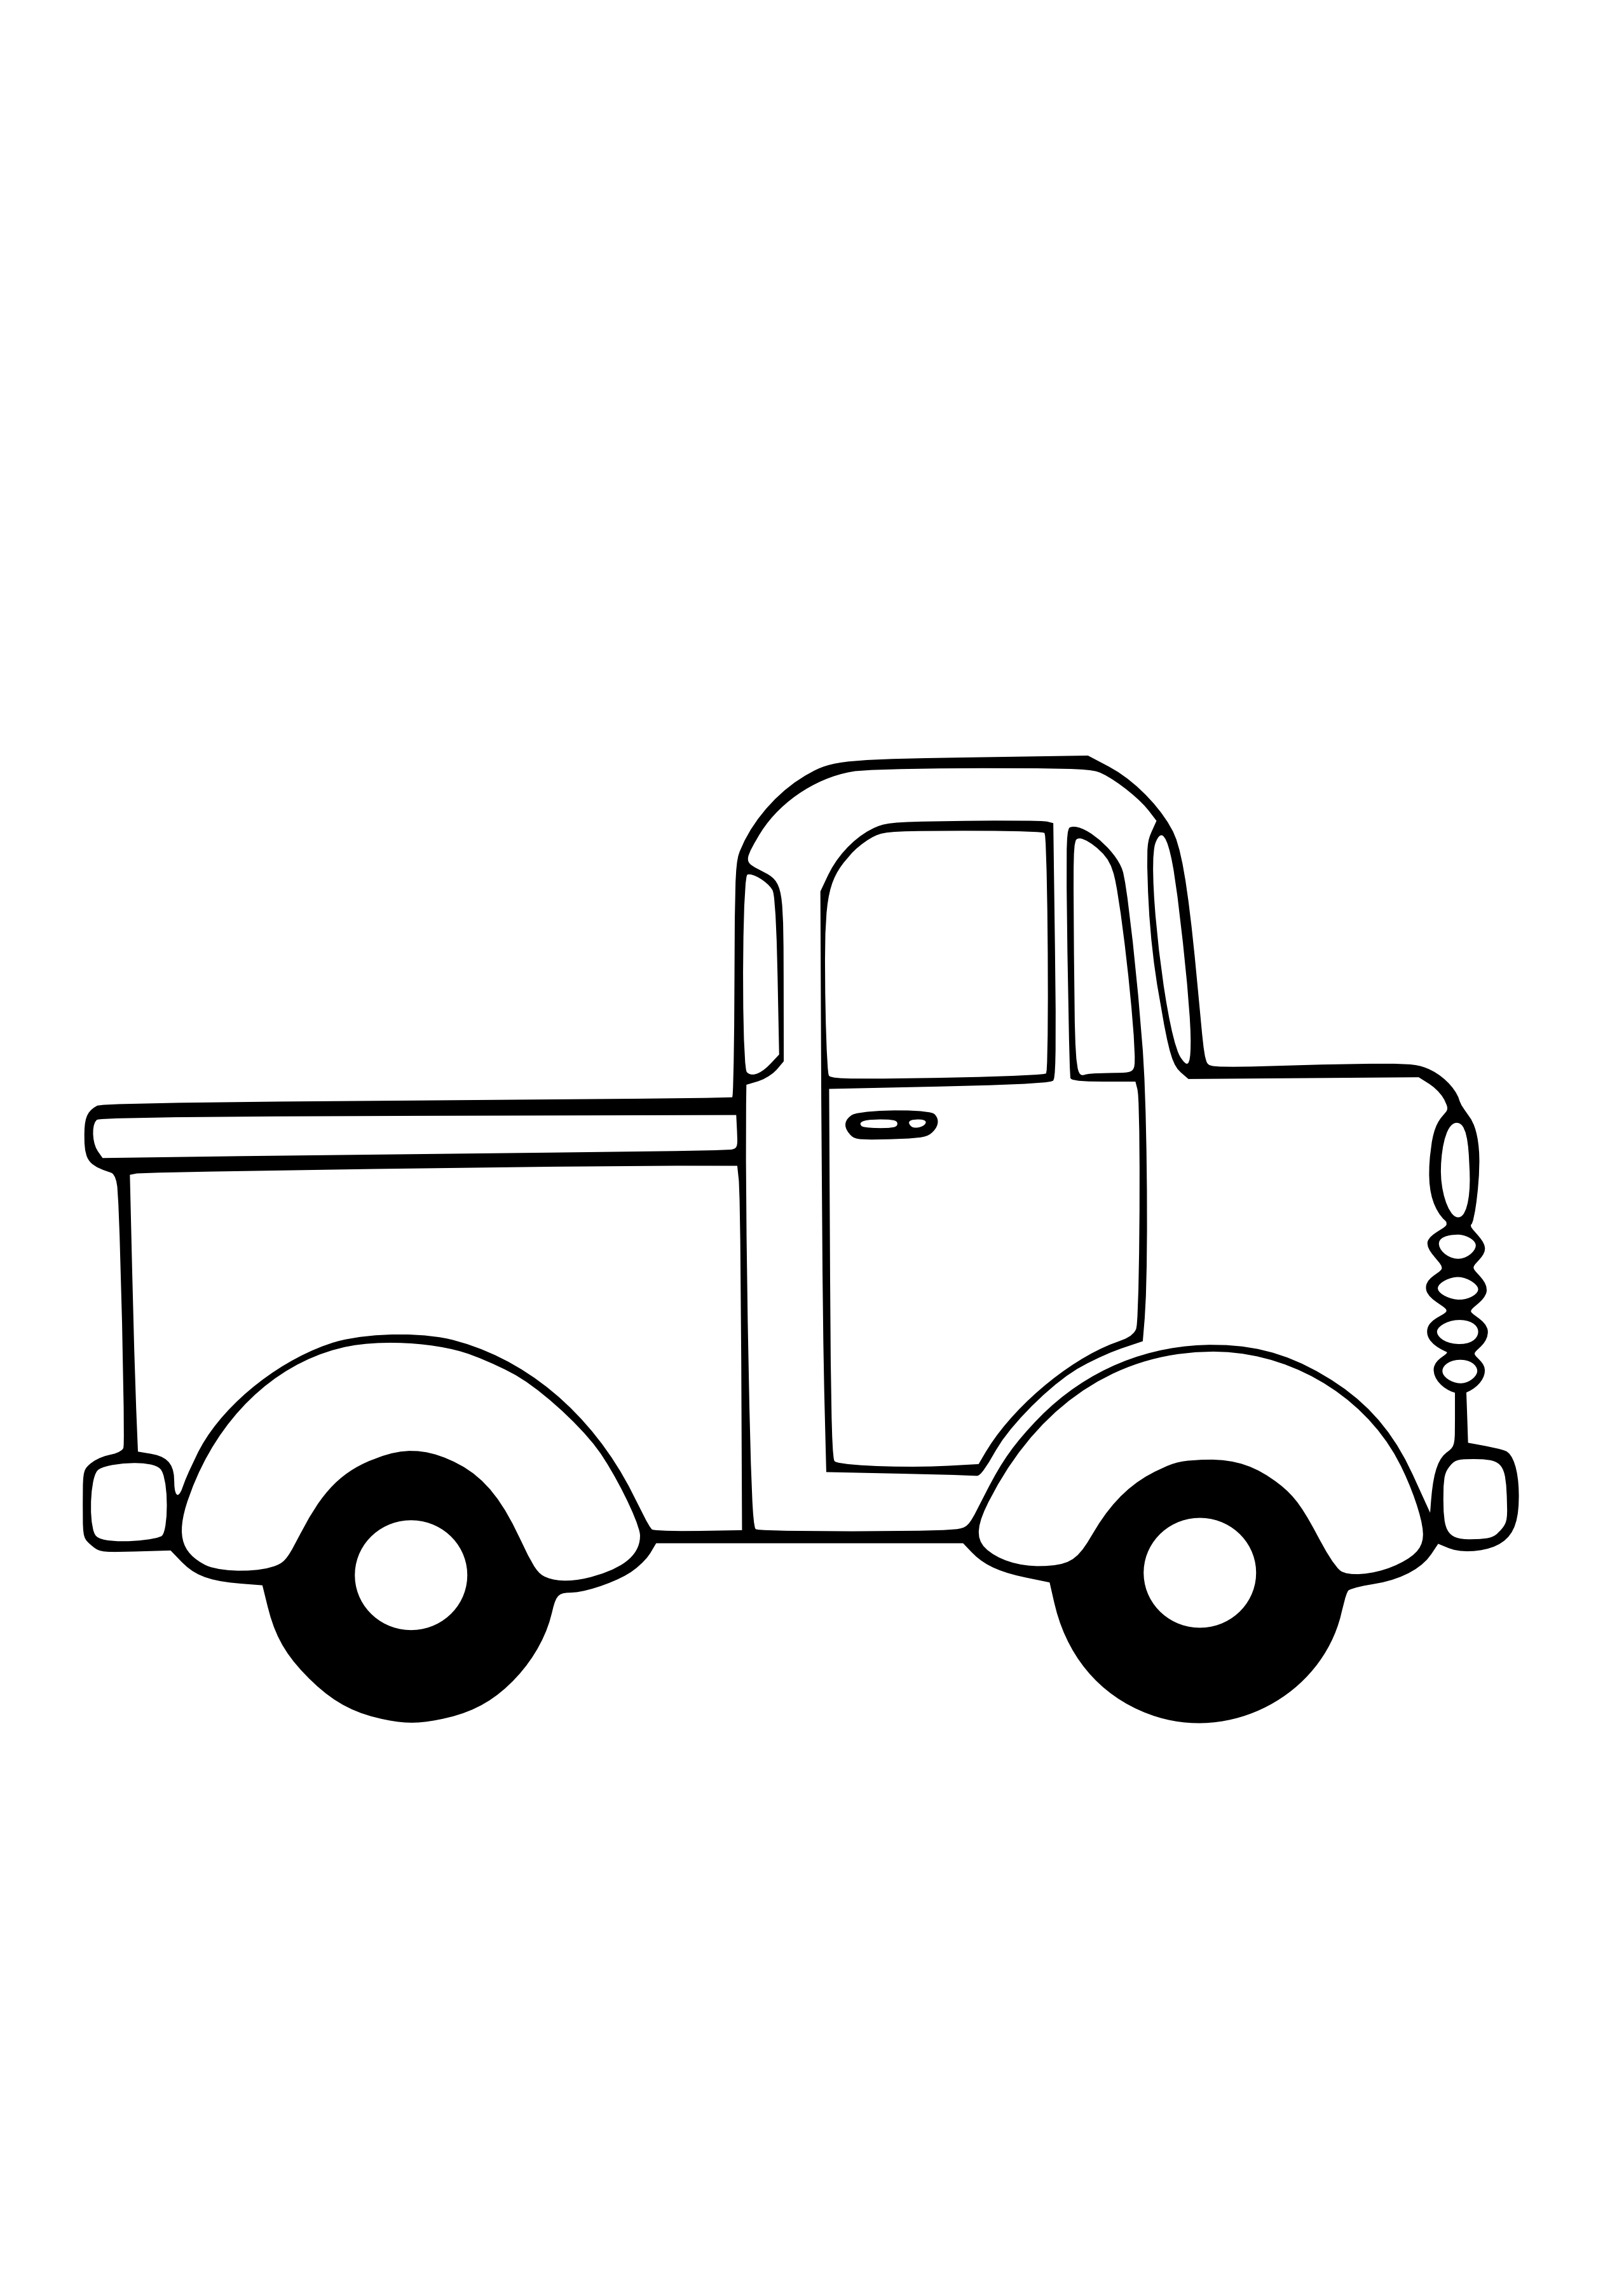 Drawing Lines Using Css : Toy truck clipart black and white panda free